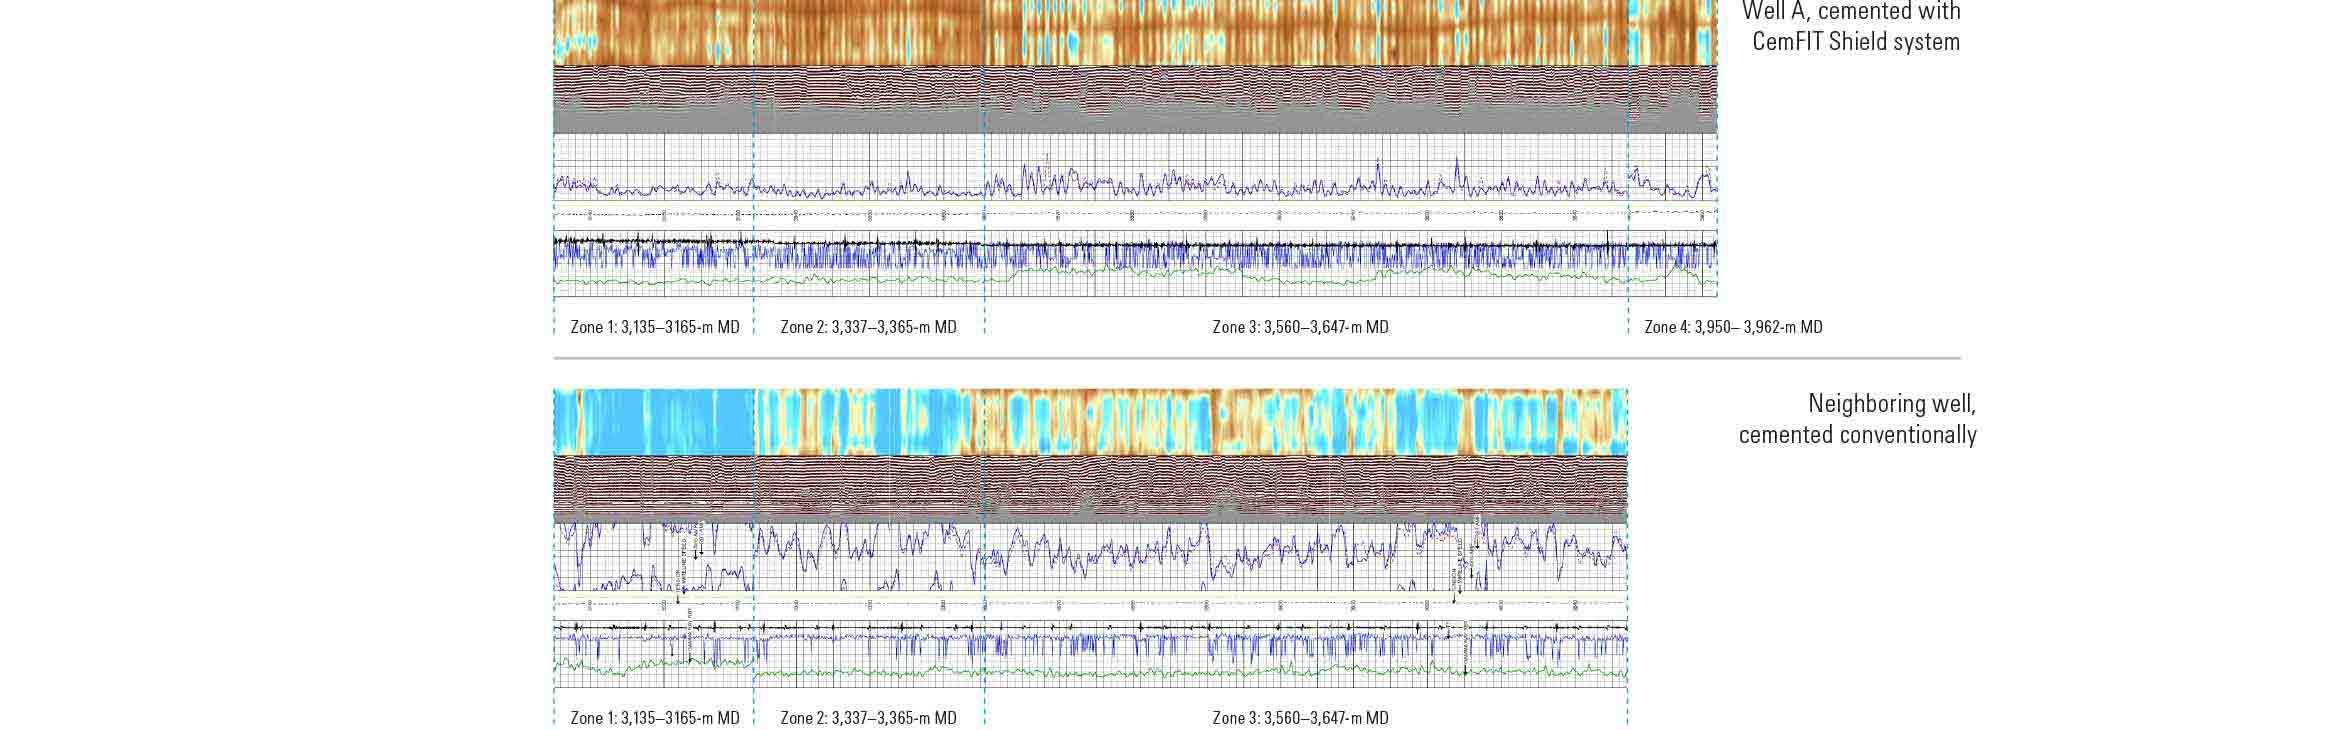 Bond logs demonstrating improved zonal isolation in the well cemented using CemFIT Shield system.